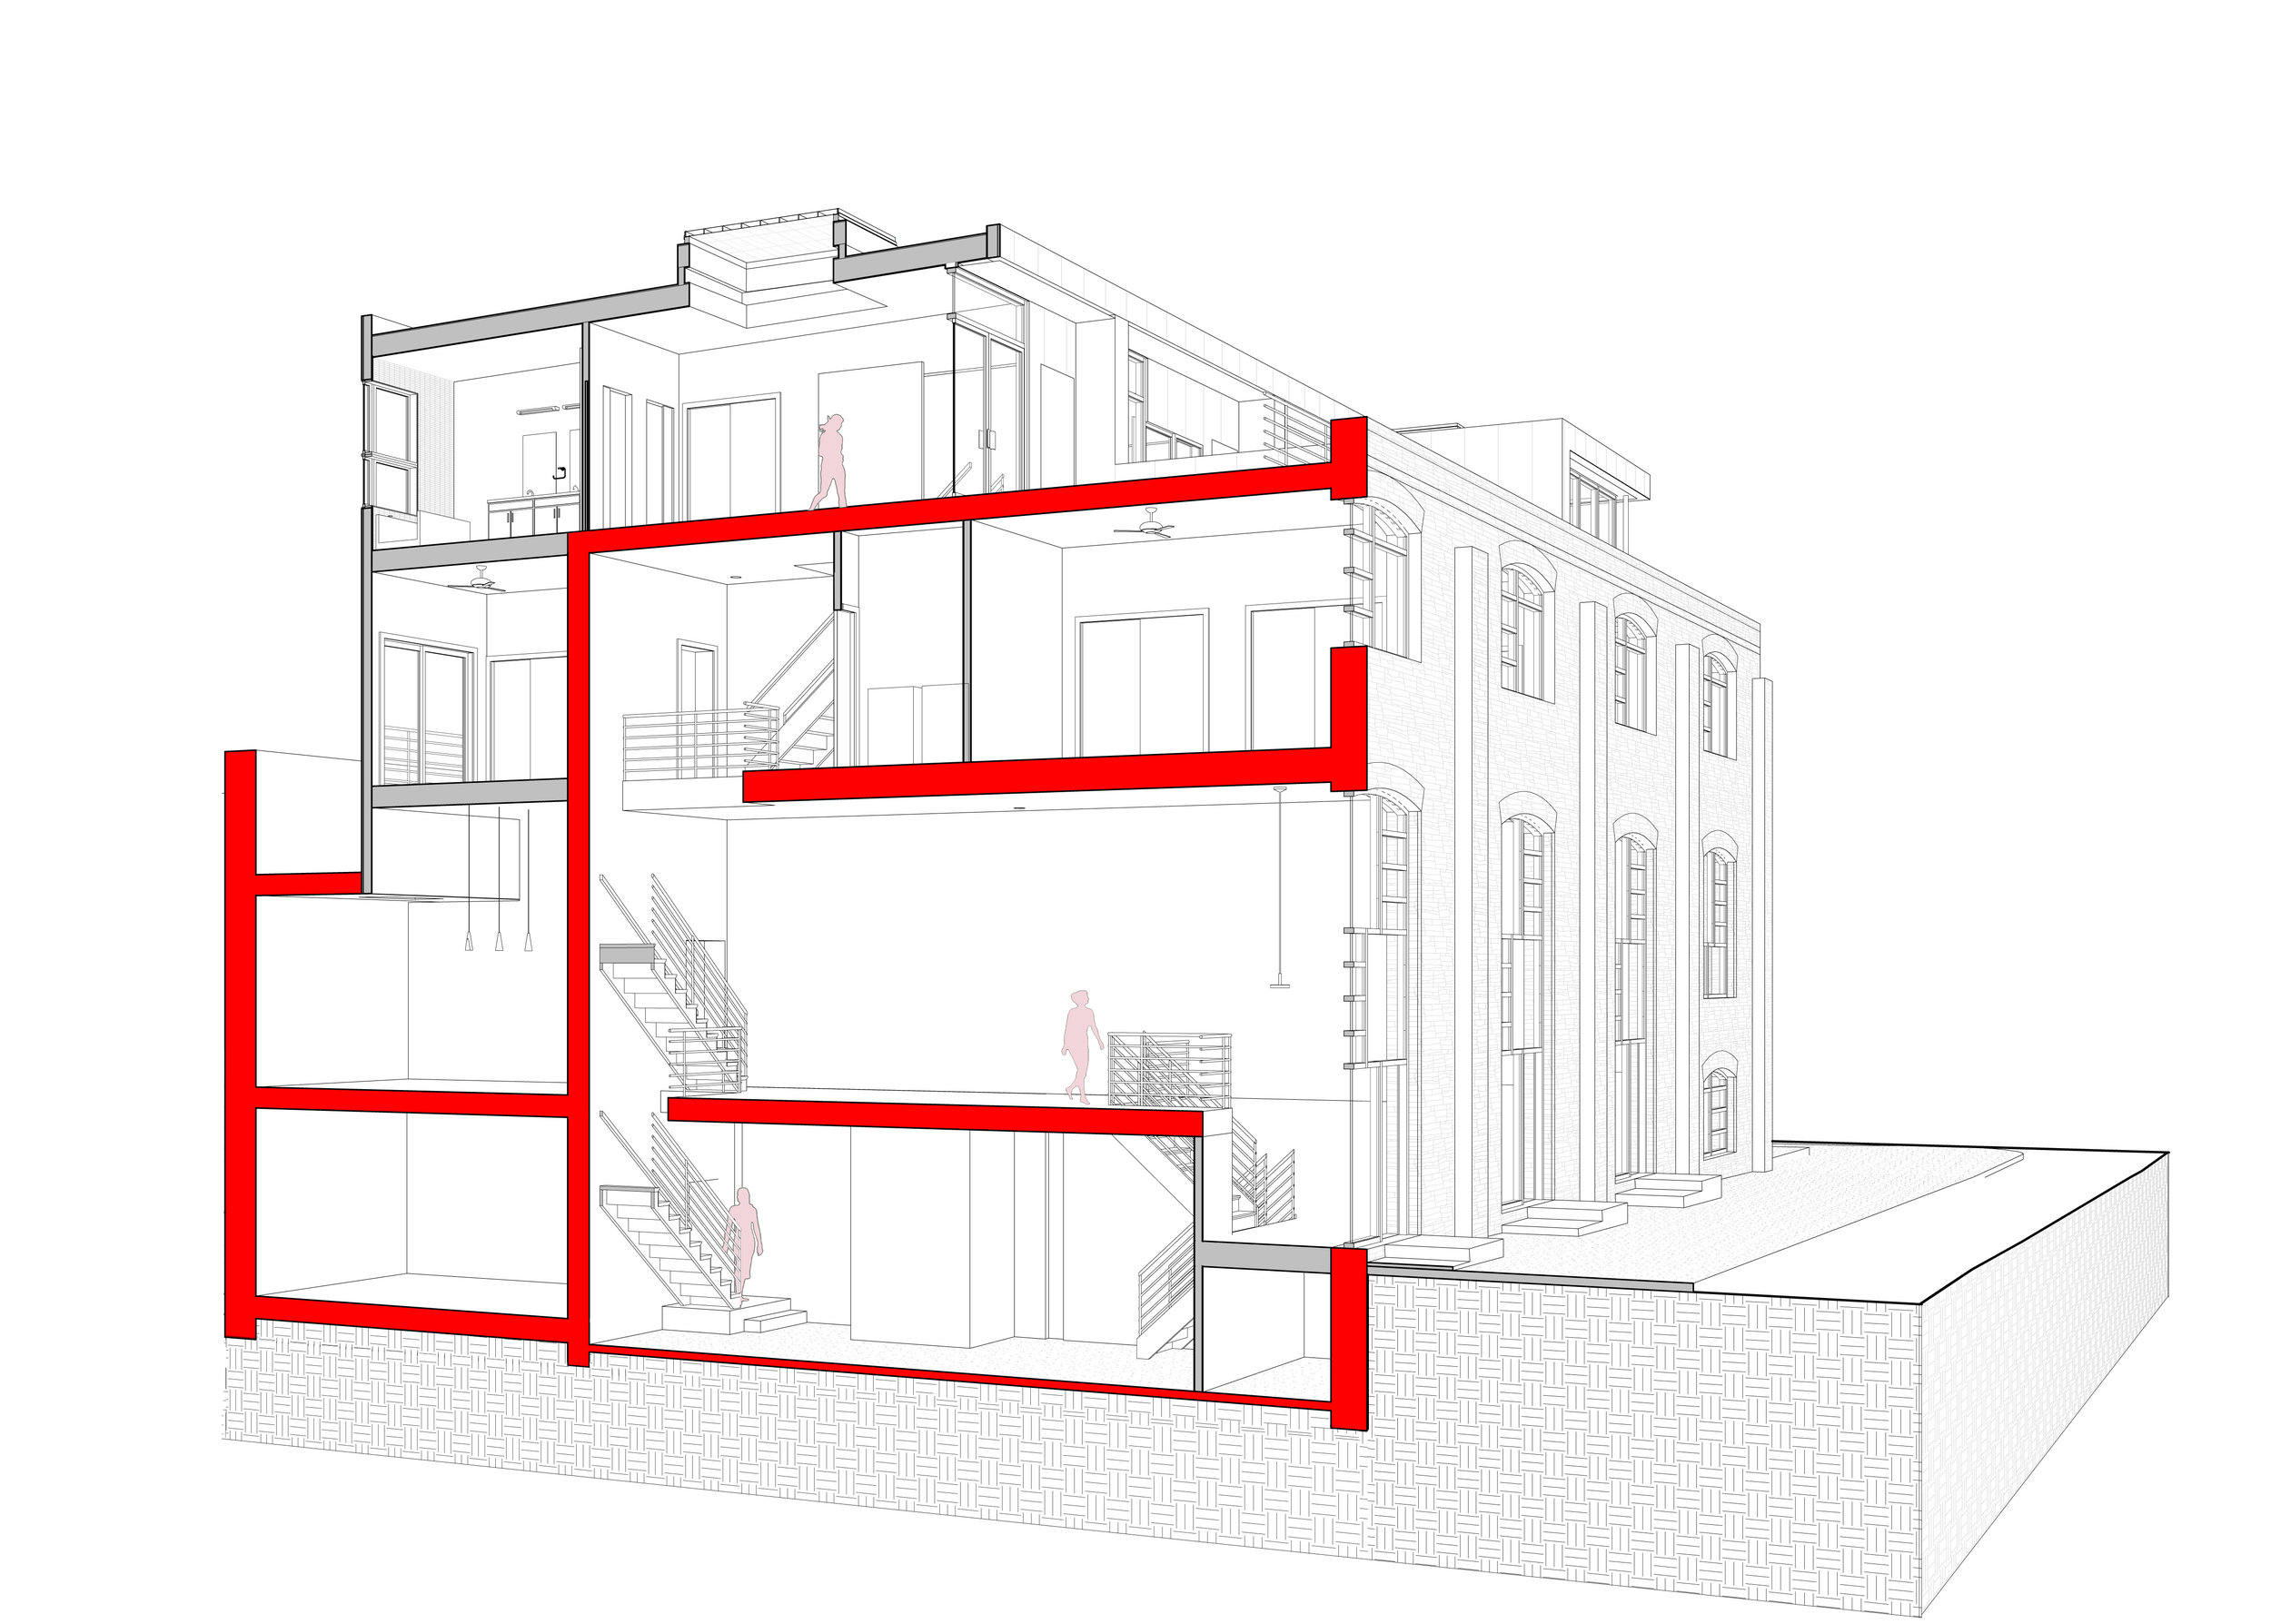 Building Section; the existing building profile is shown in red, and new construction is shown in gray